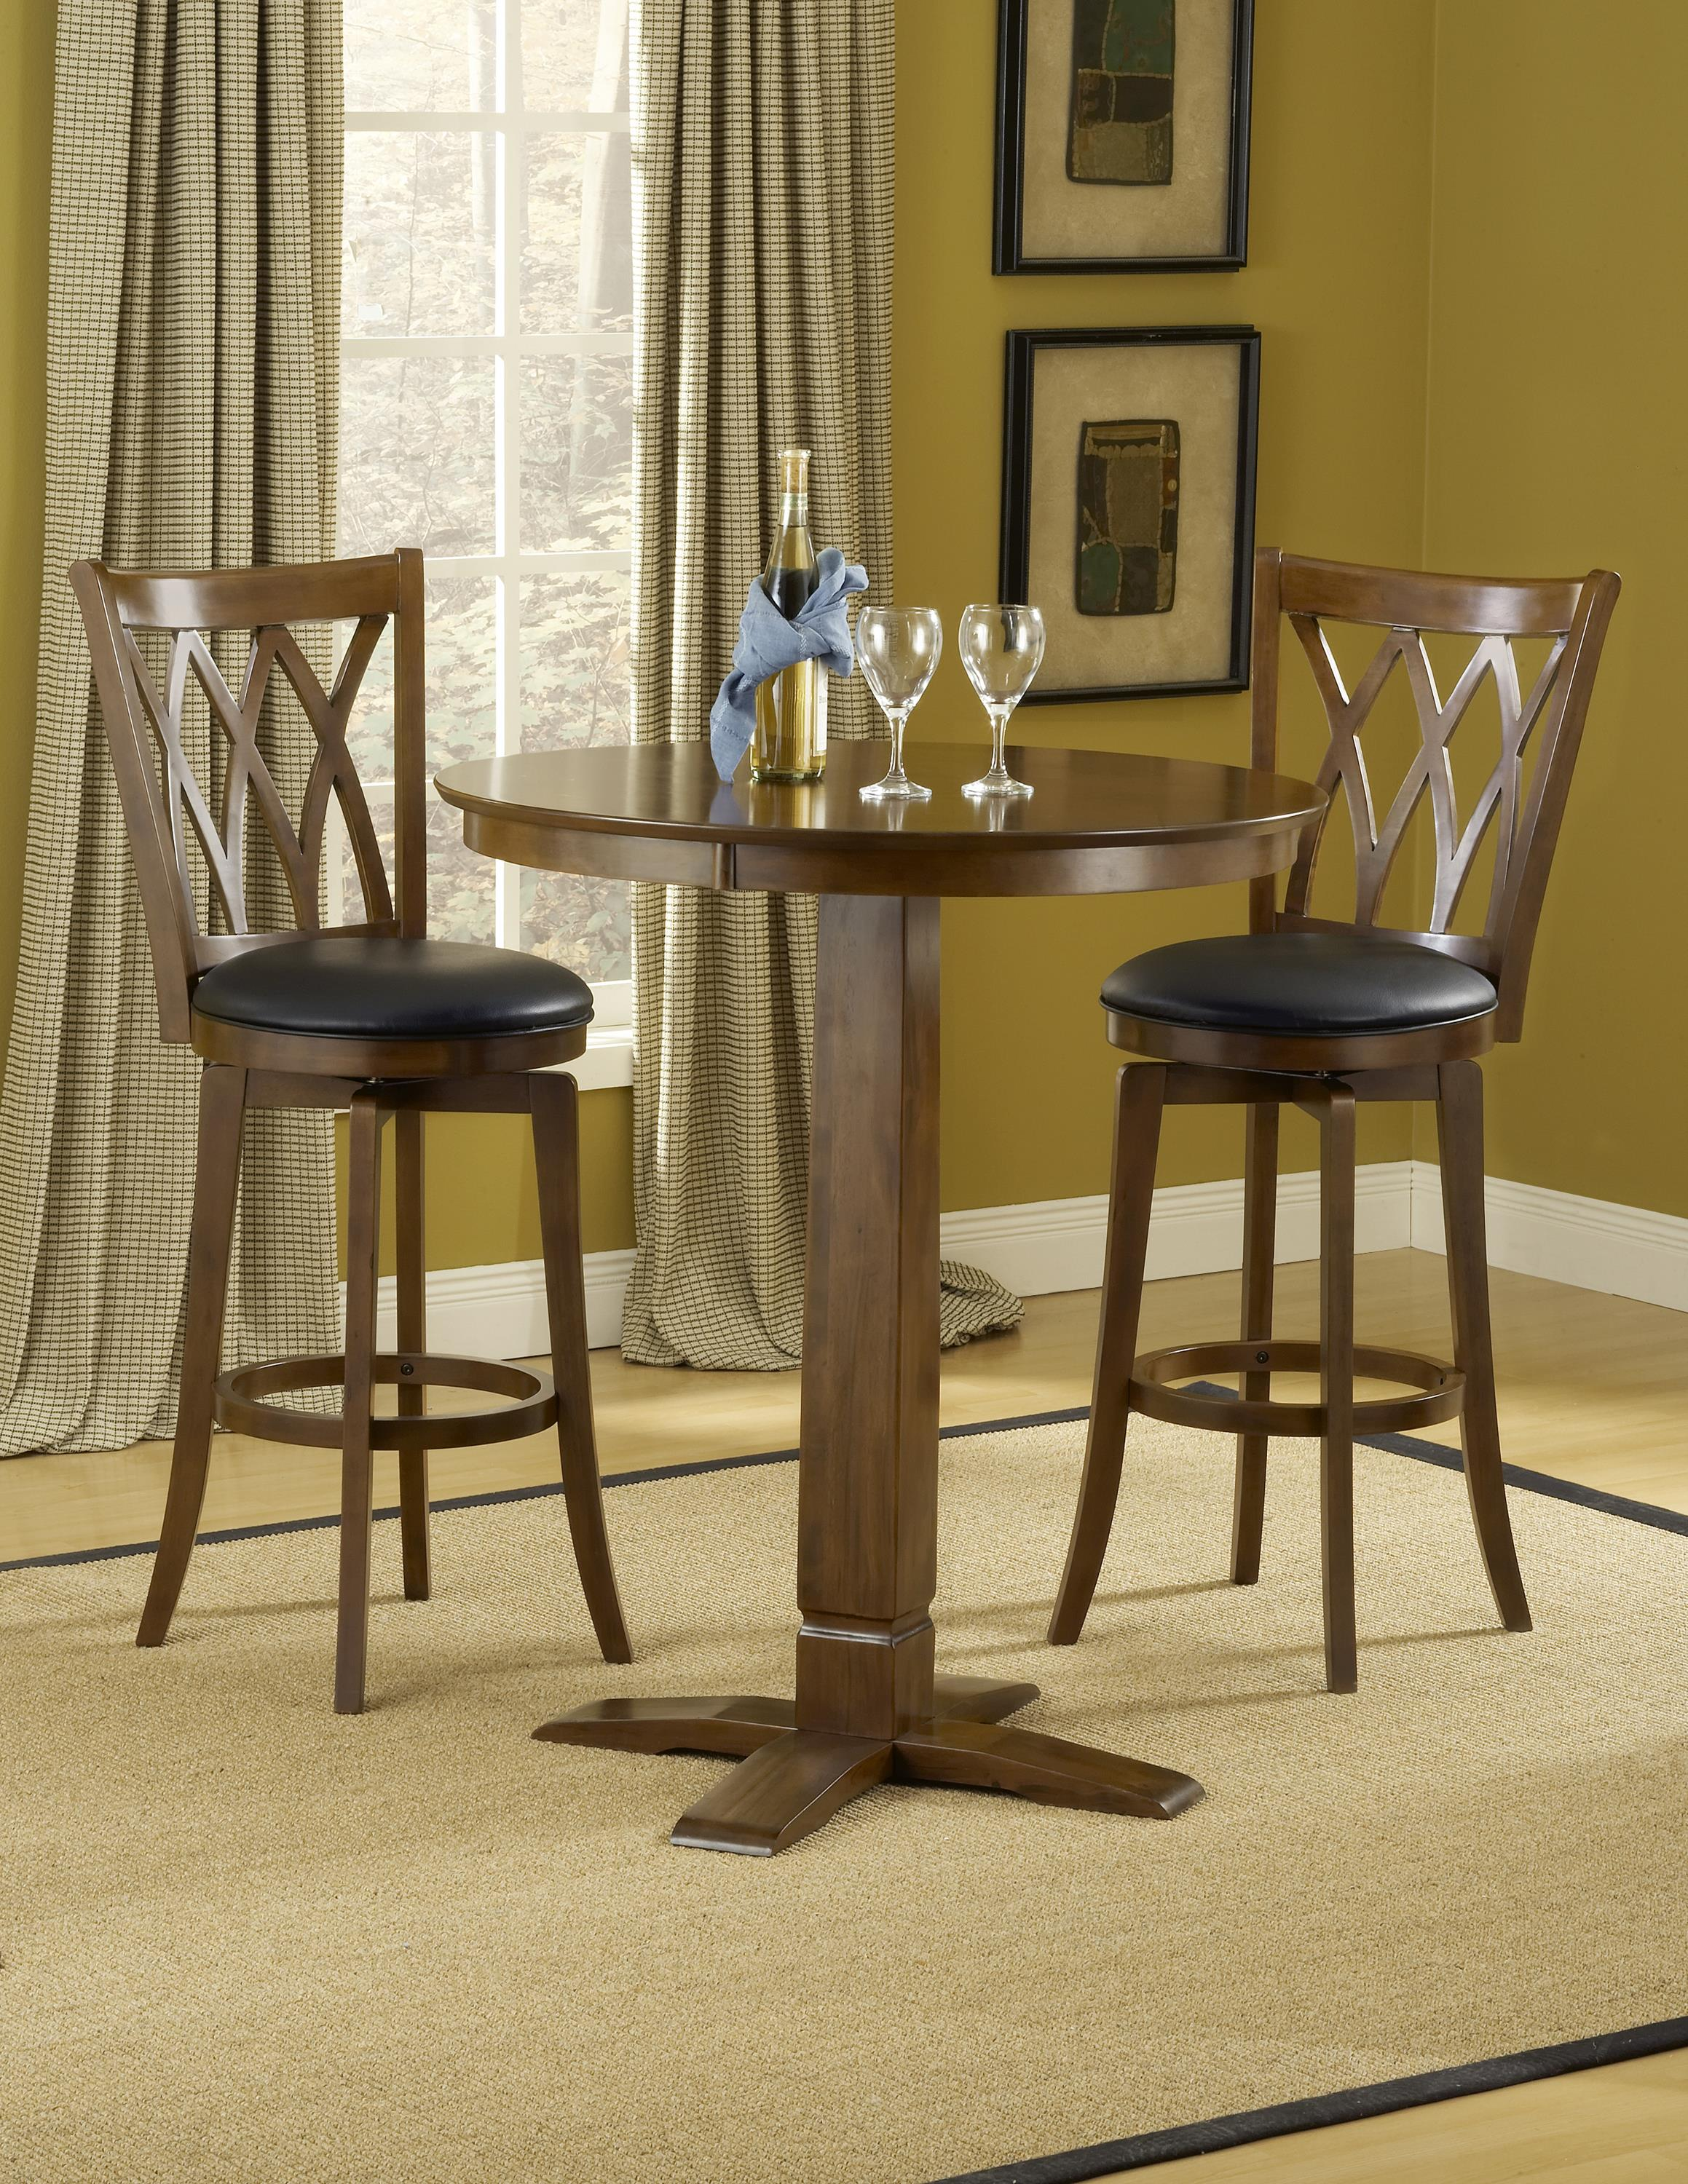 3-Piece Bar Table and Stool Set